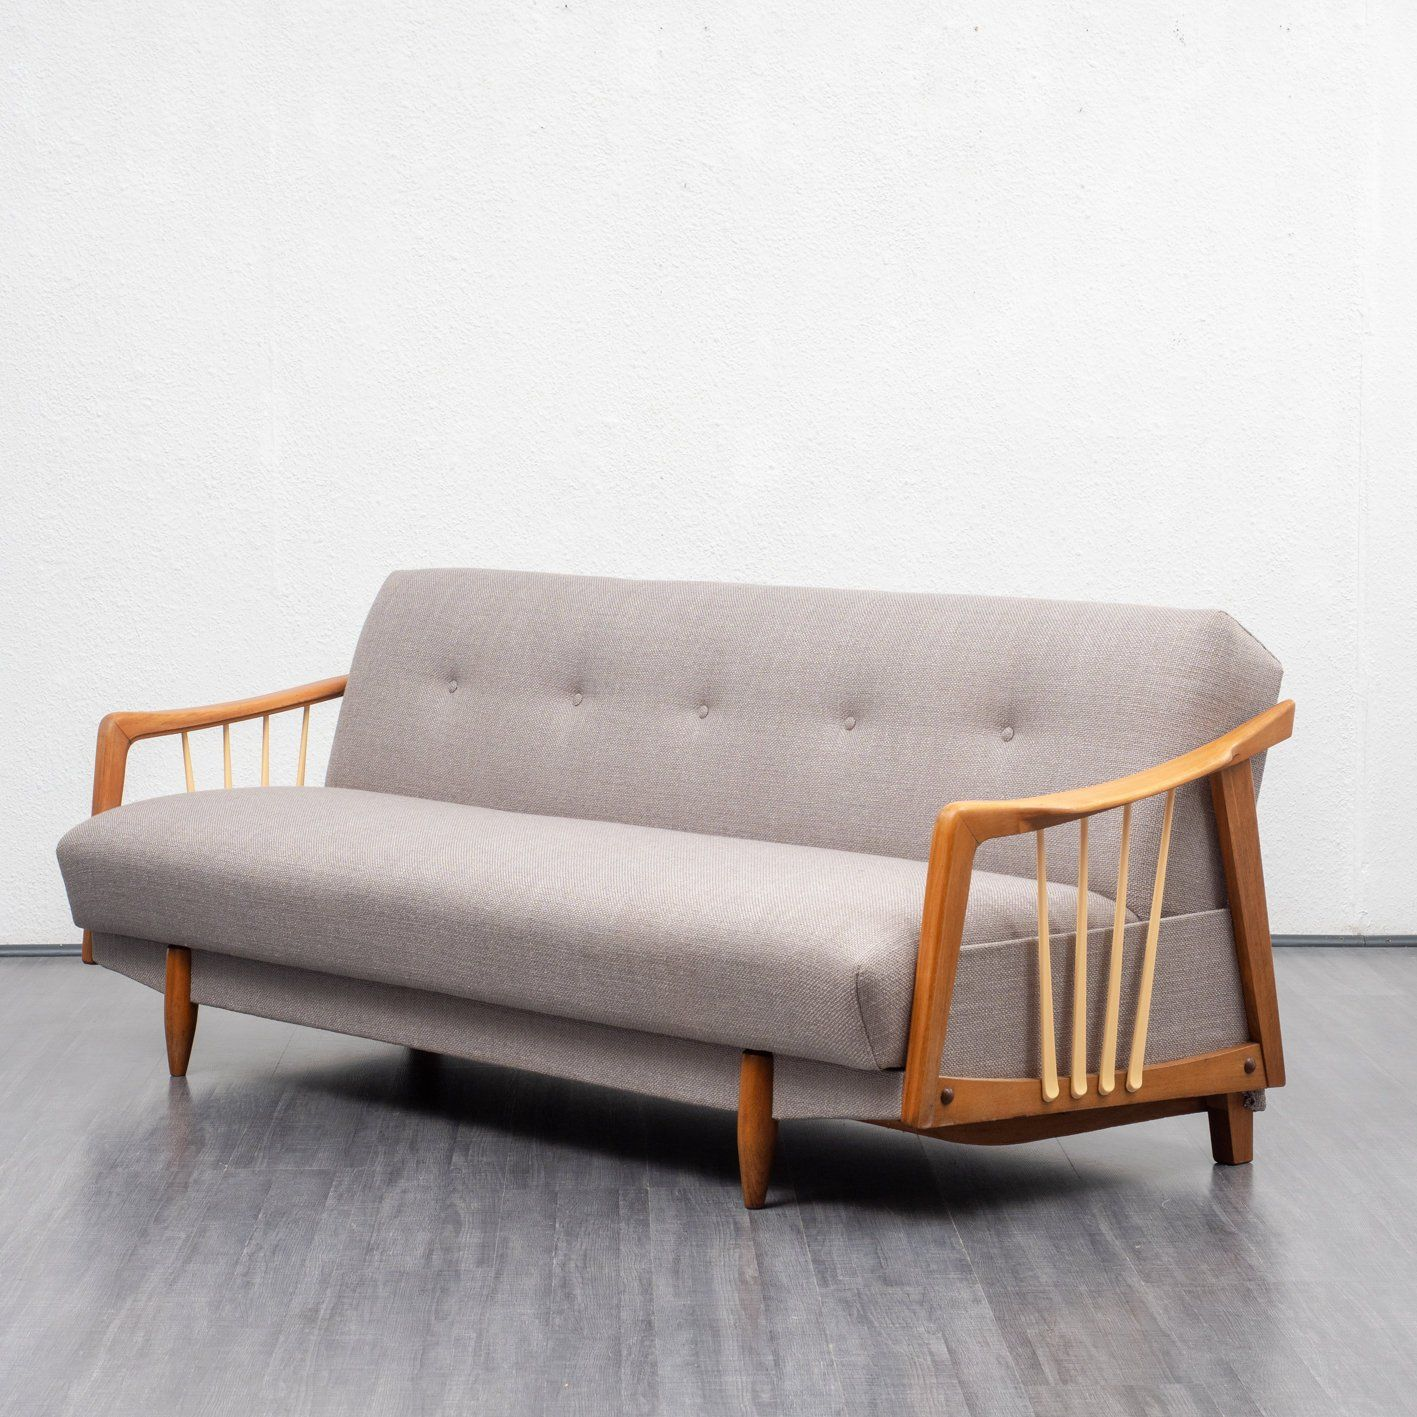 1950s Streamline Sofa New Upholstery Projects To Try Furniture Vintage Furniture Online Furniture